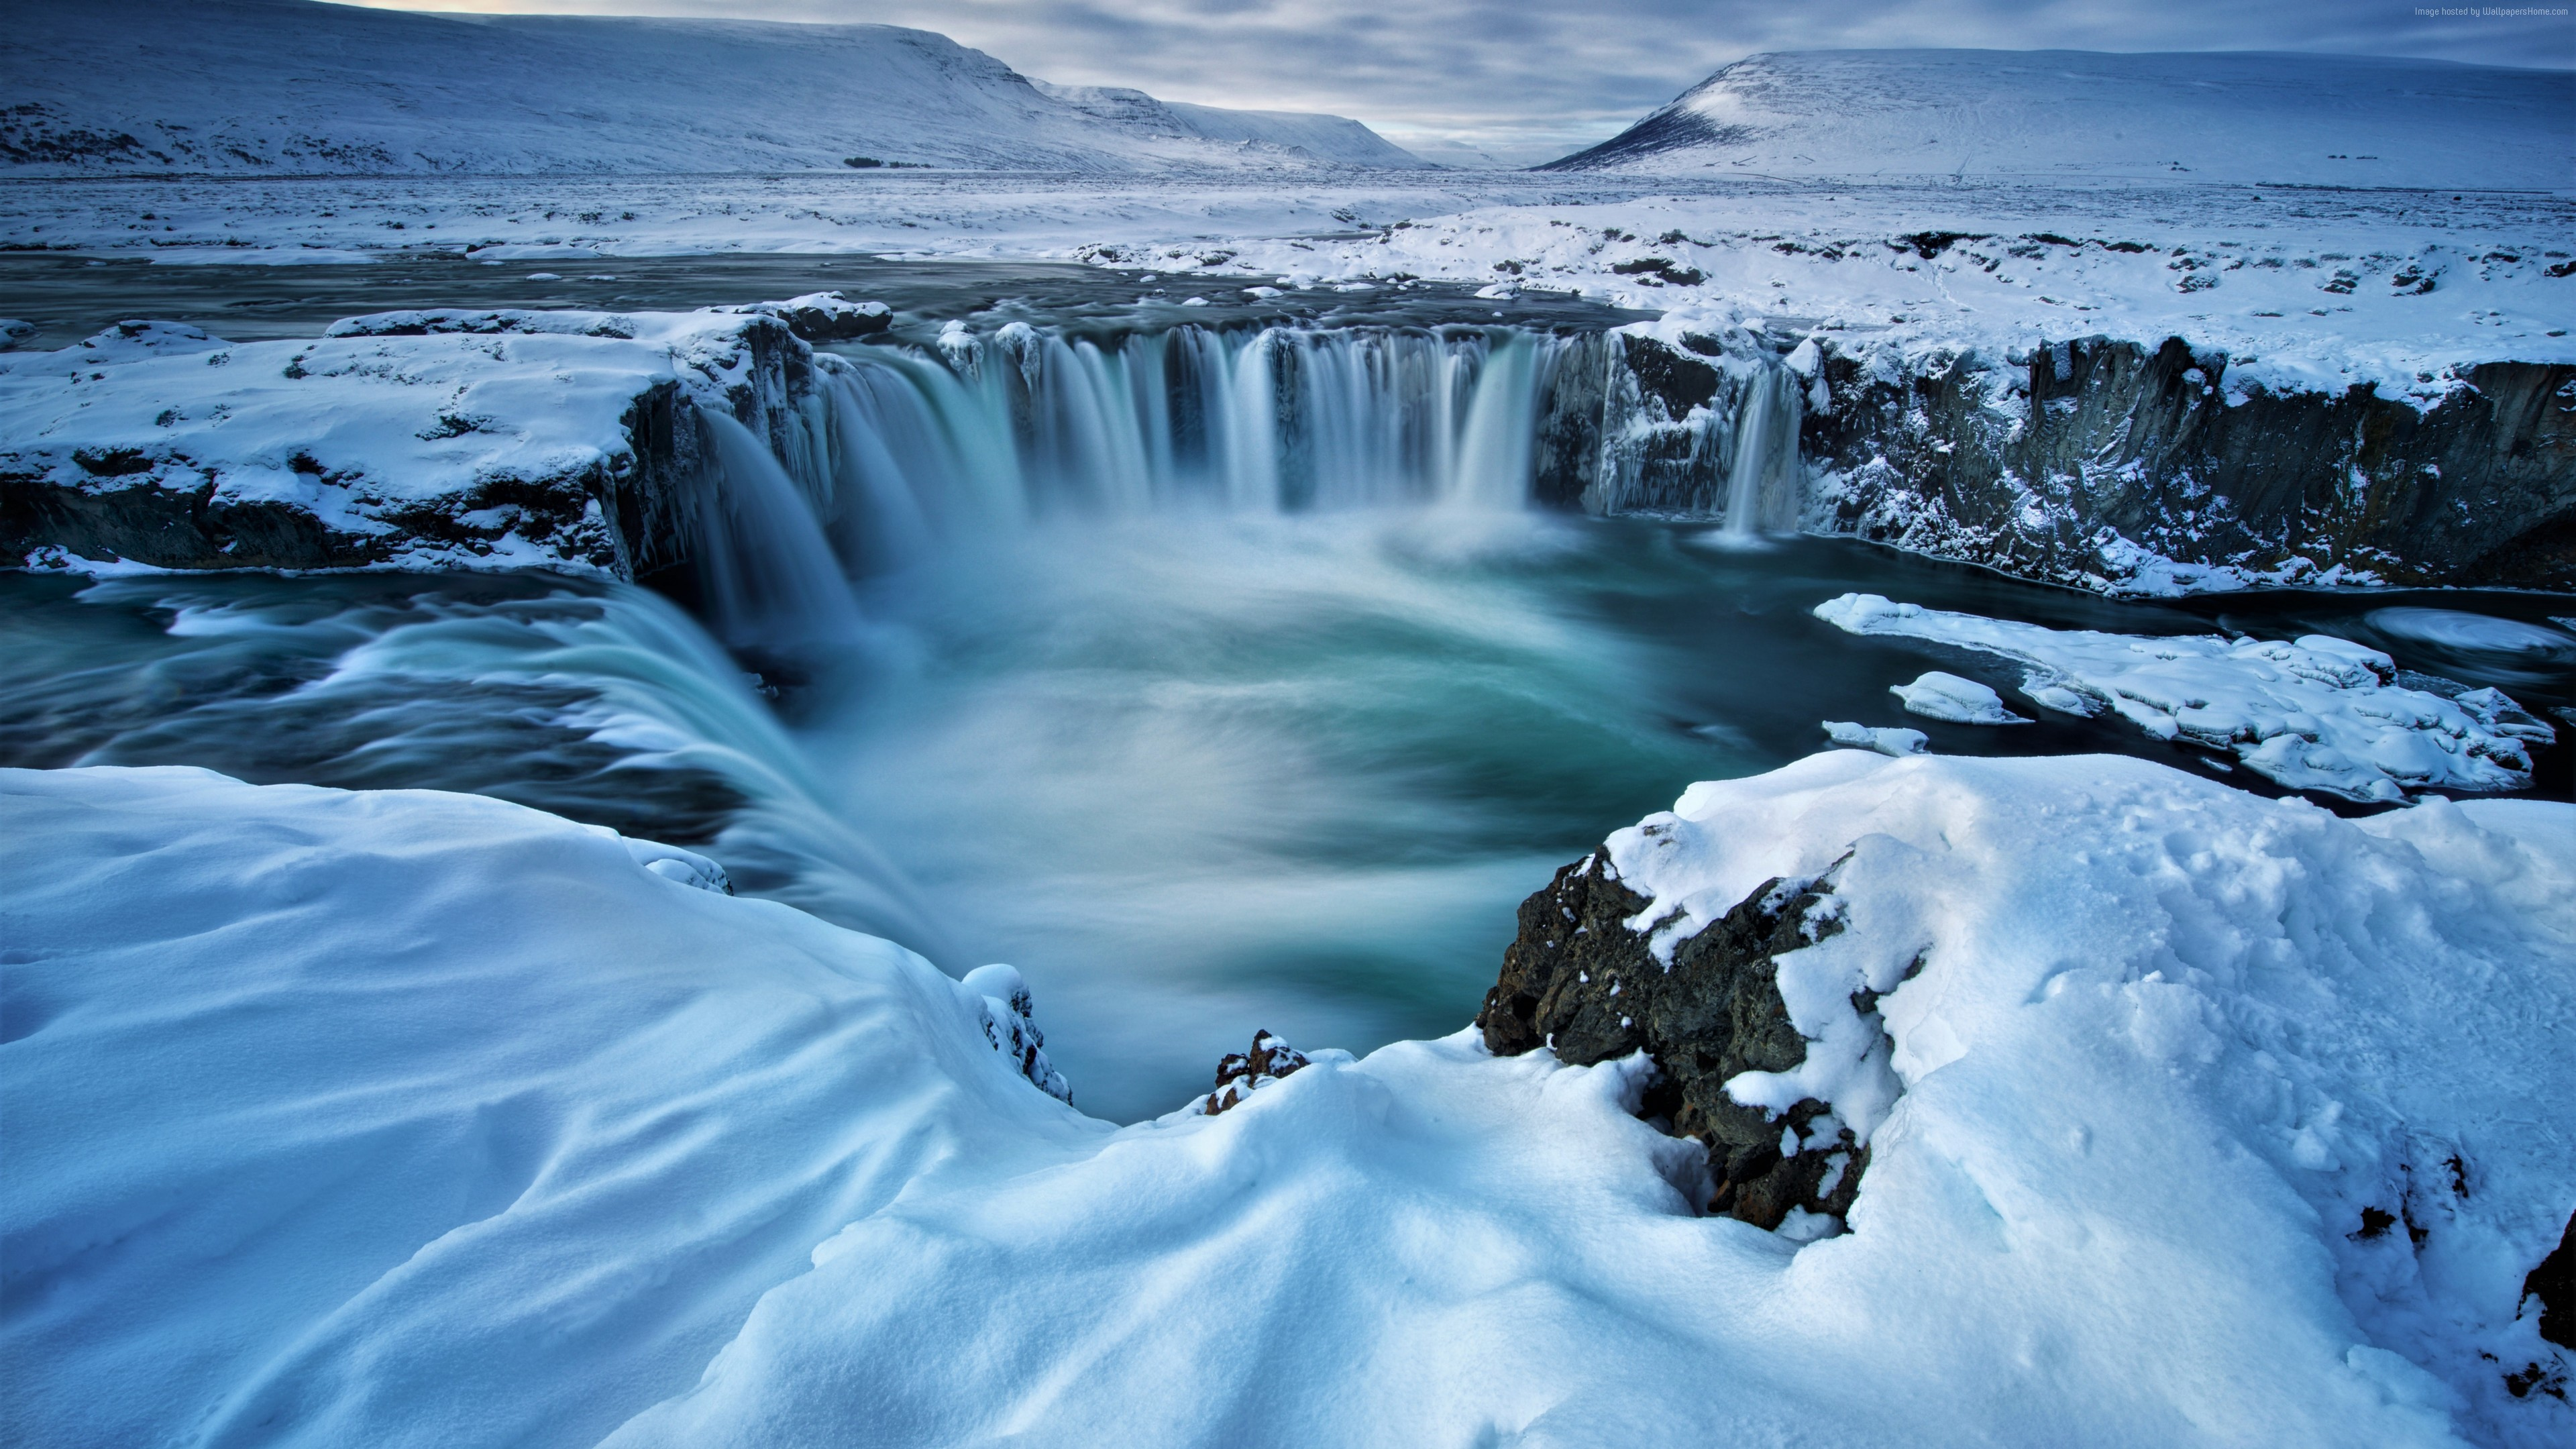 Wallpaper Godafoss, waterfall, winter, Iceland, 5k, Nature